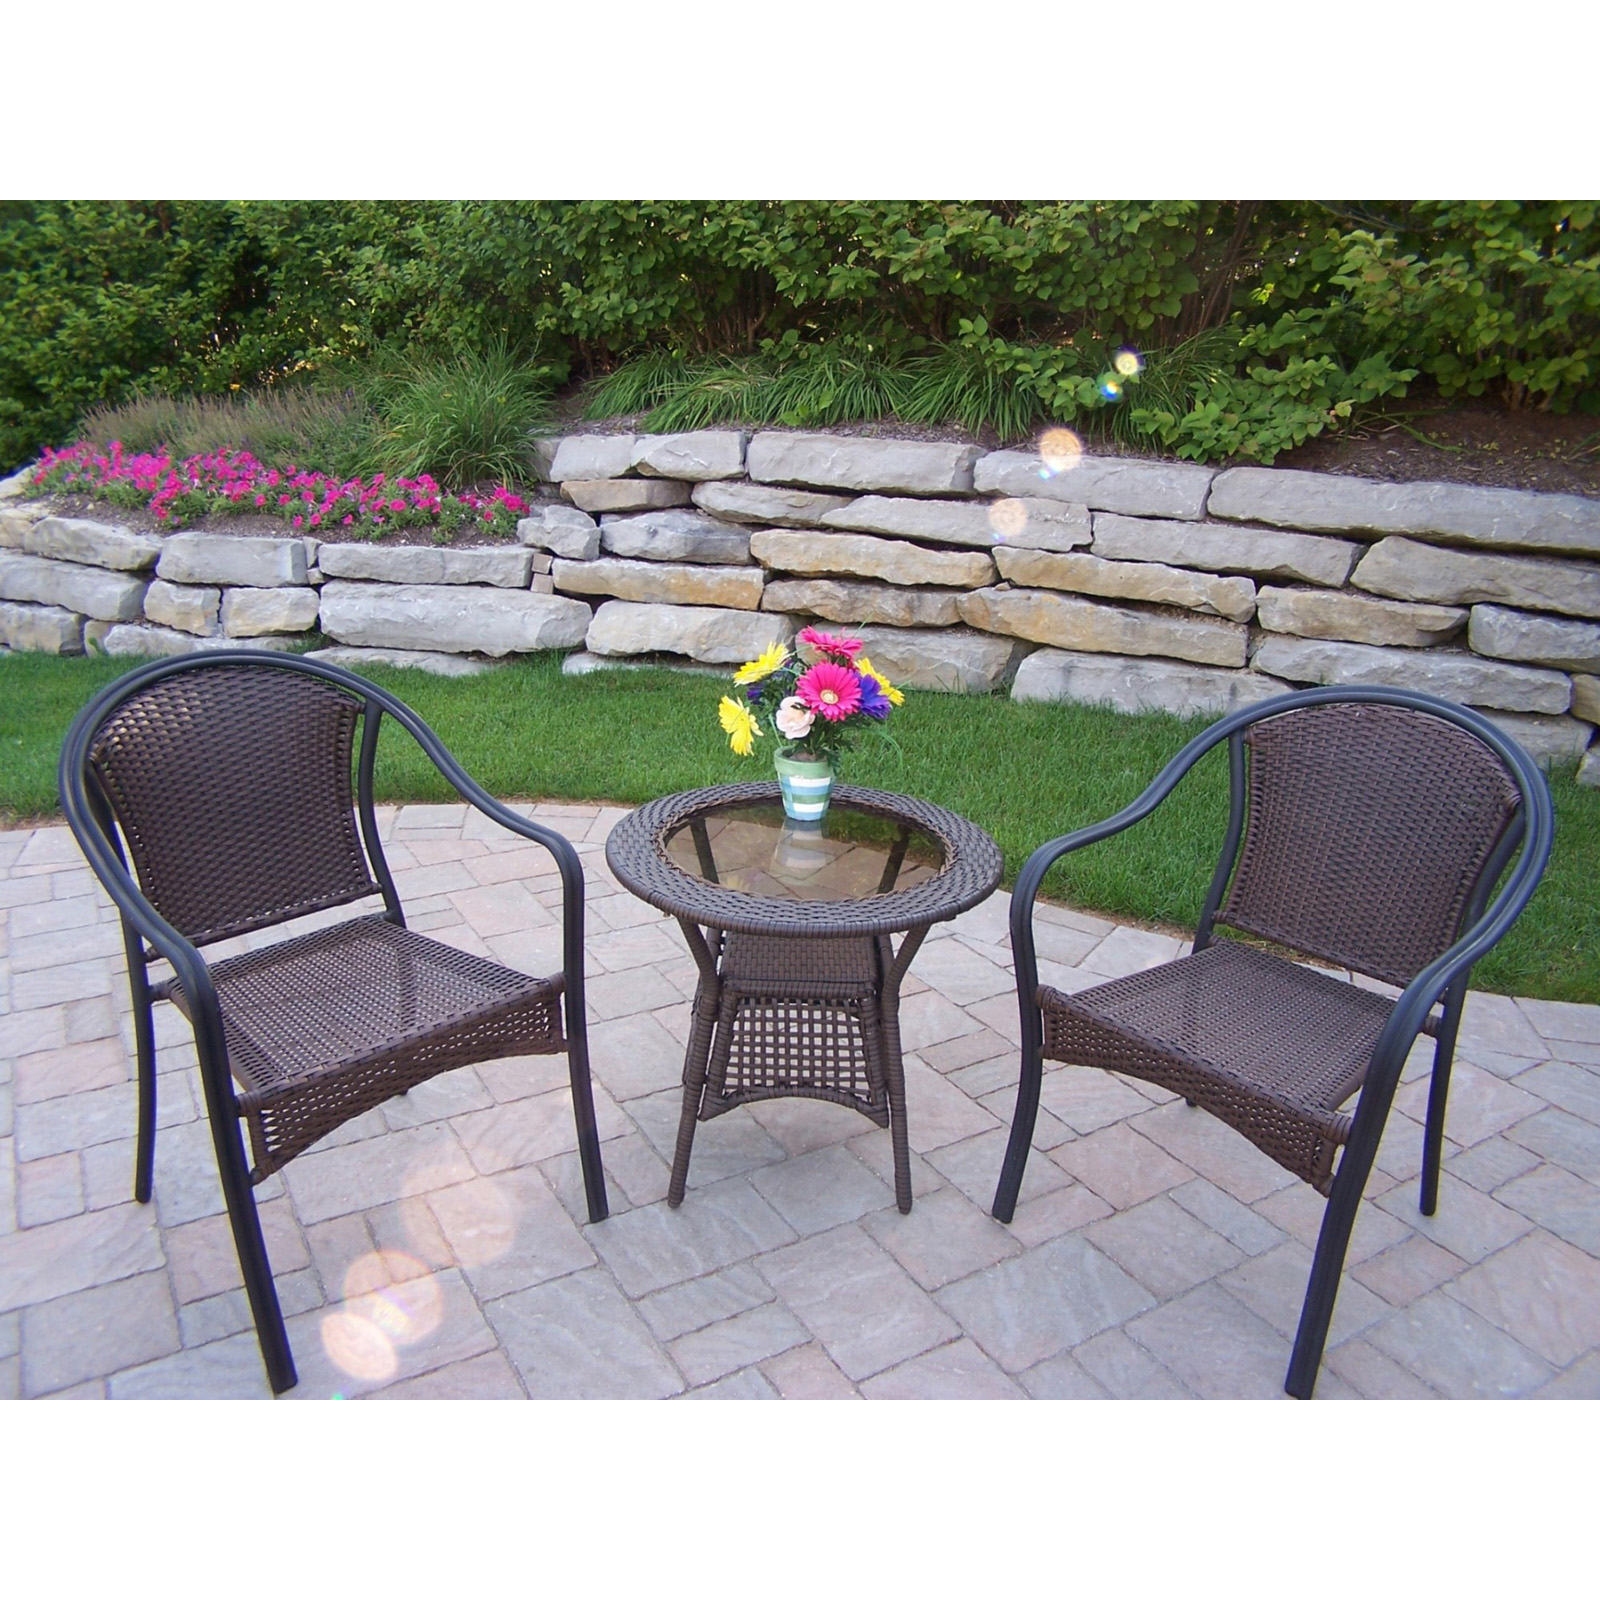 Oakland Living Tuscany All-Weather Wicker Patio Bistro Set ... on Oakland Living Bistro Set id=41639